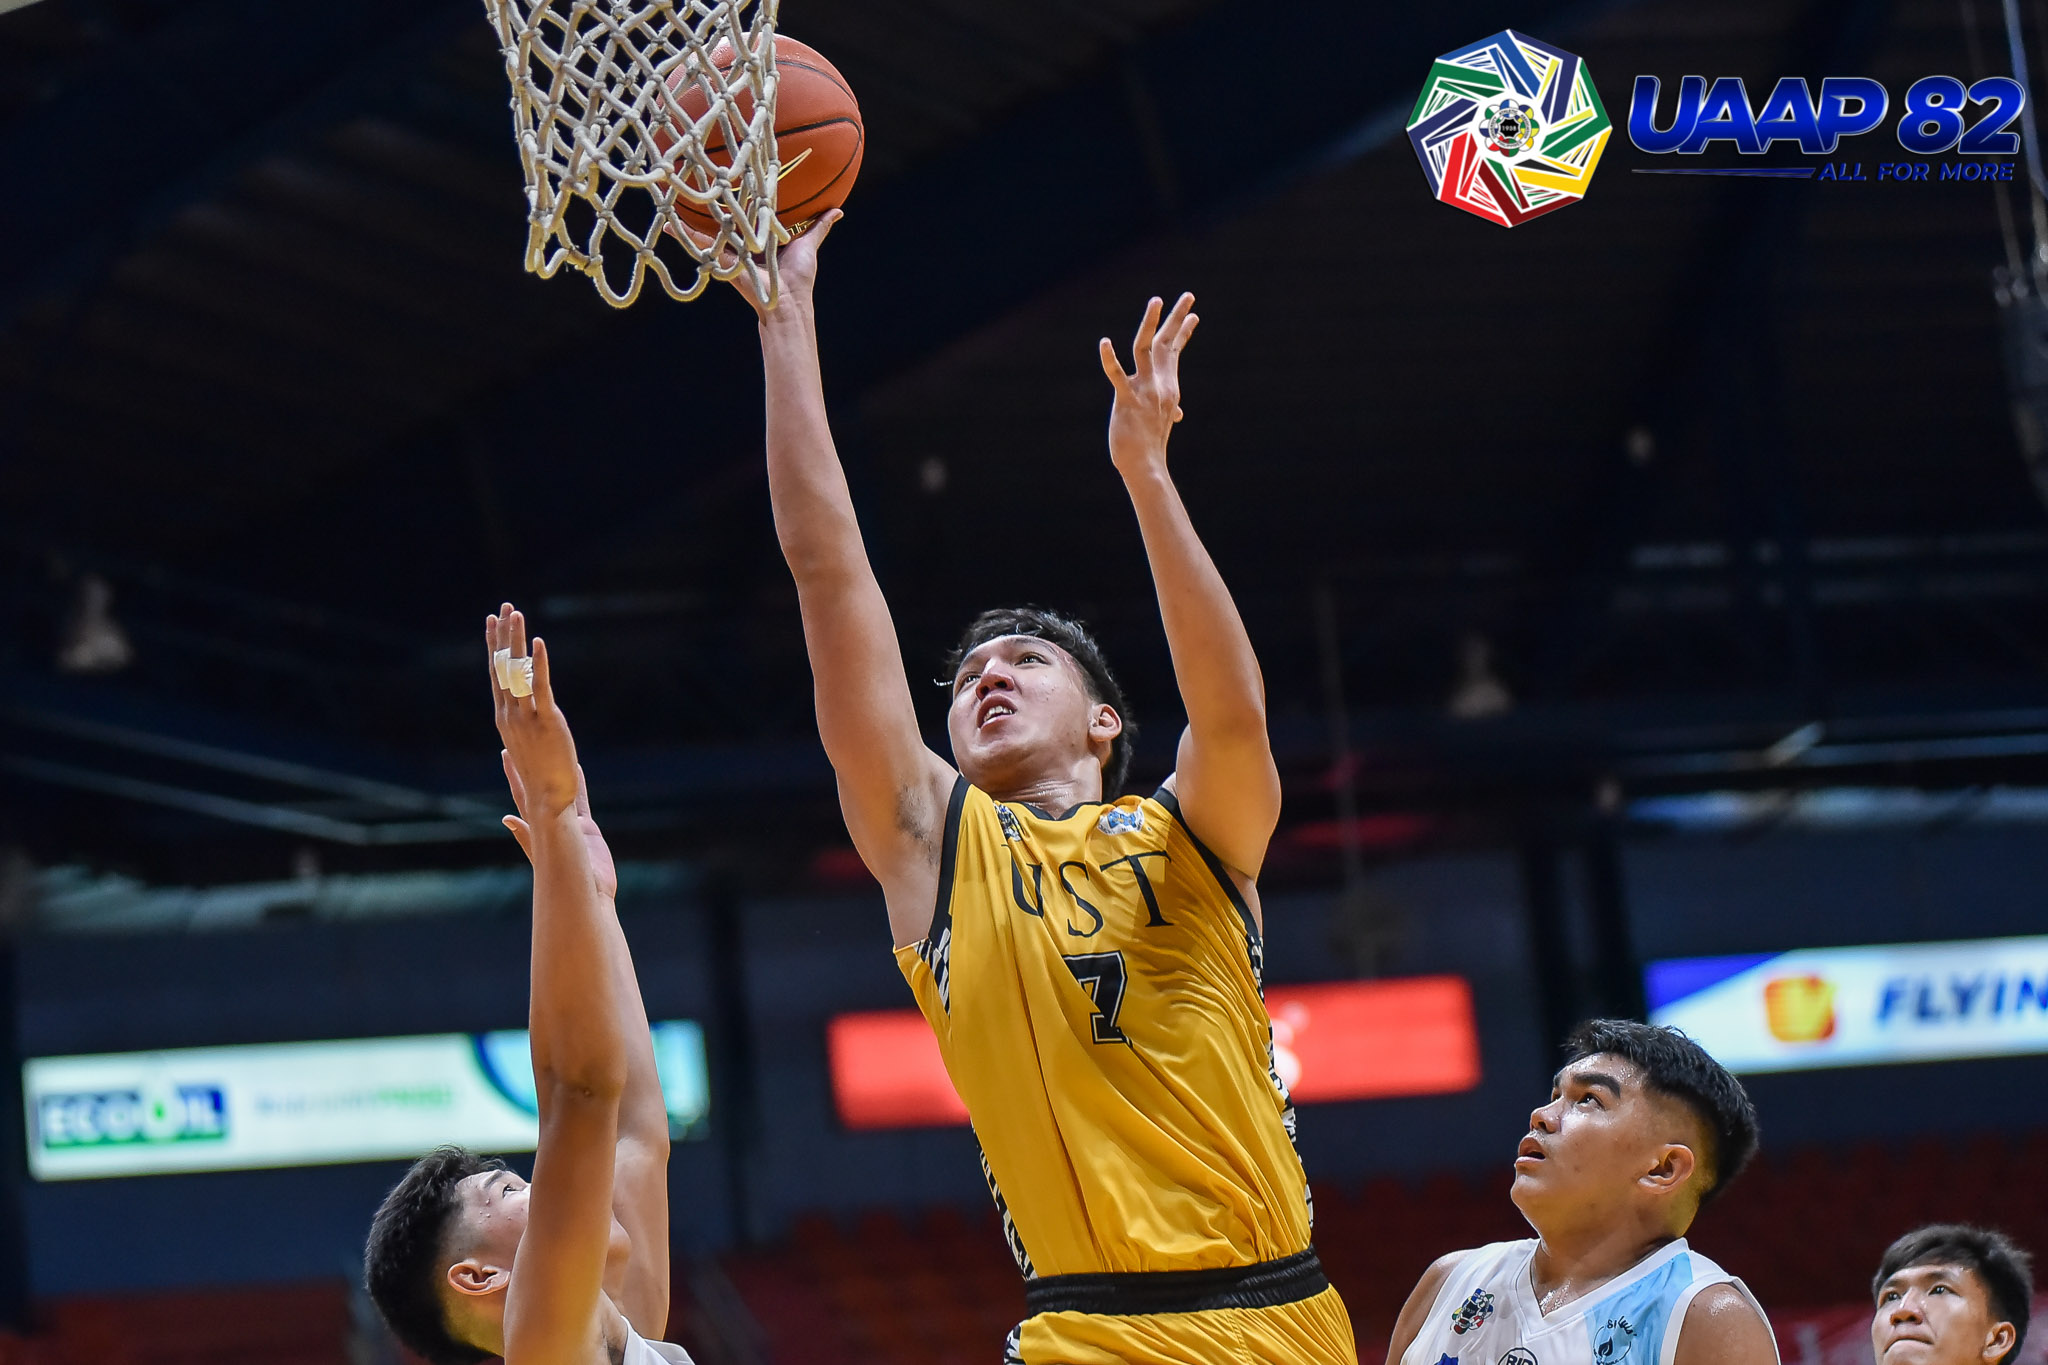 Tiebreaker Times No Agents Involved: Decision to go to UP was family's, says Bis Lina Basketball News UAAP UP  UST Men's Basketball UP Men's Basketball UAAP Season 83 Men's Basketball UAAP Season 83 Bismarck Lina